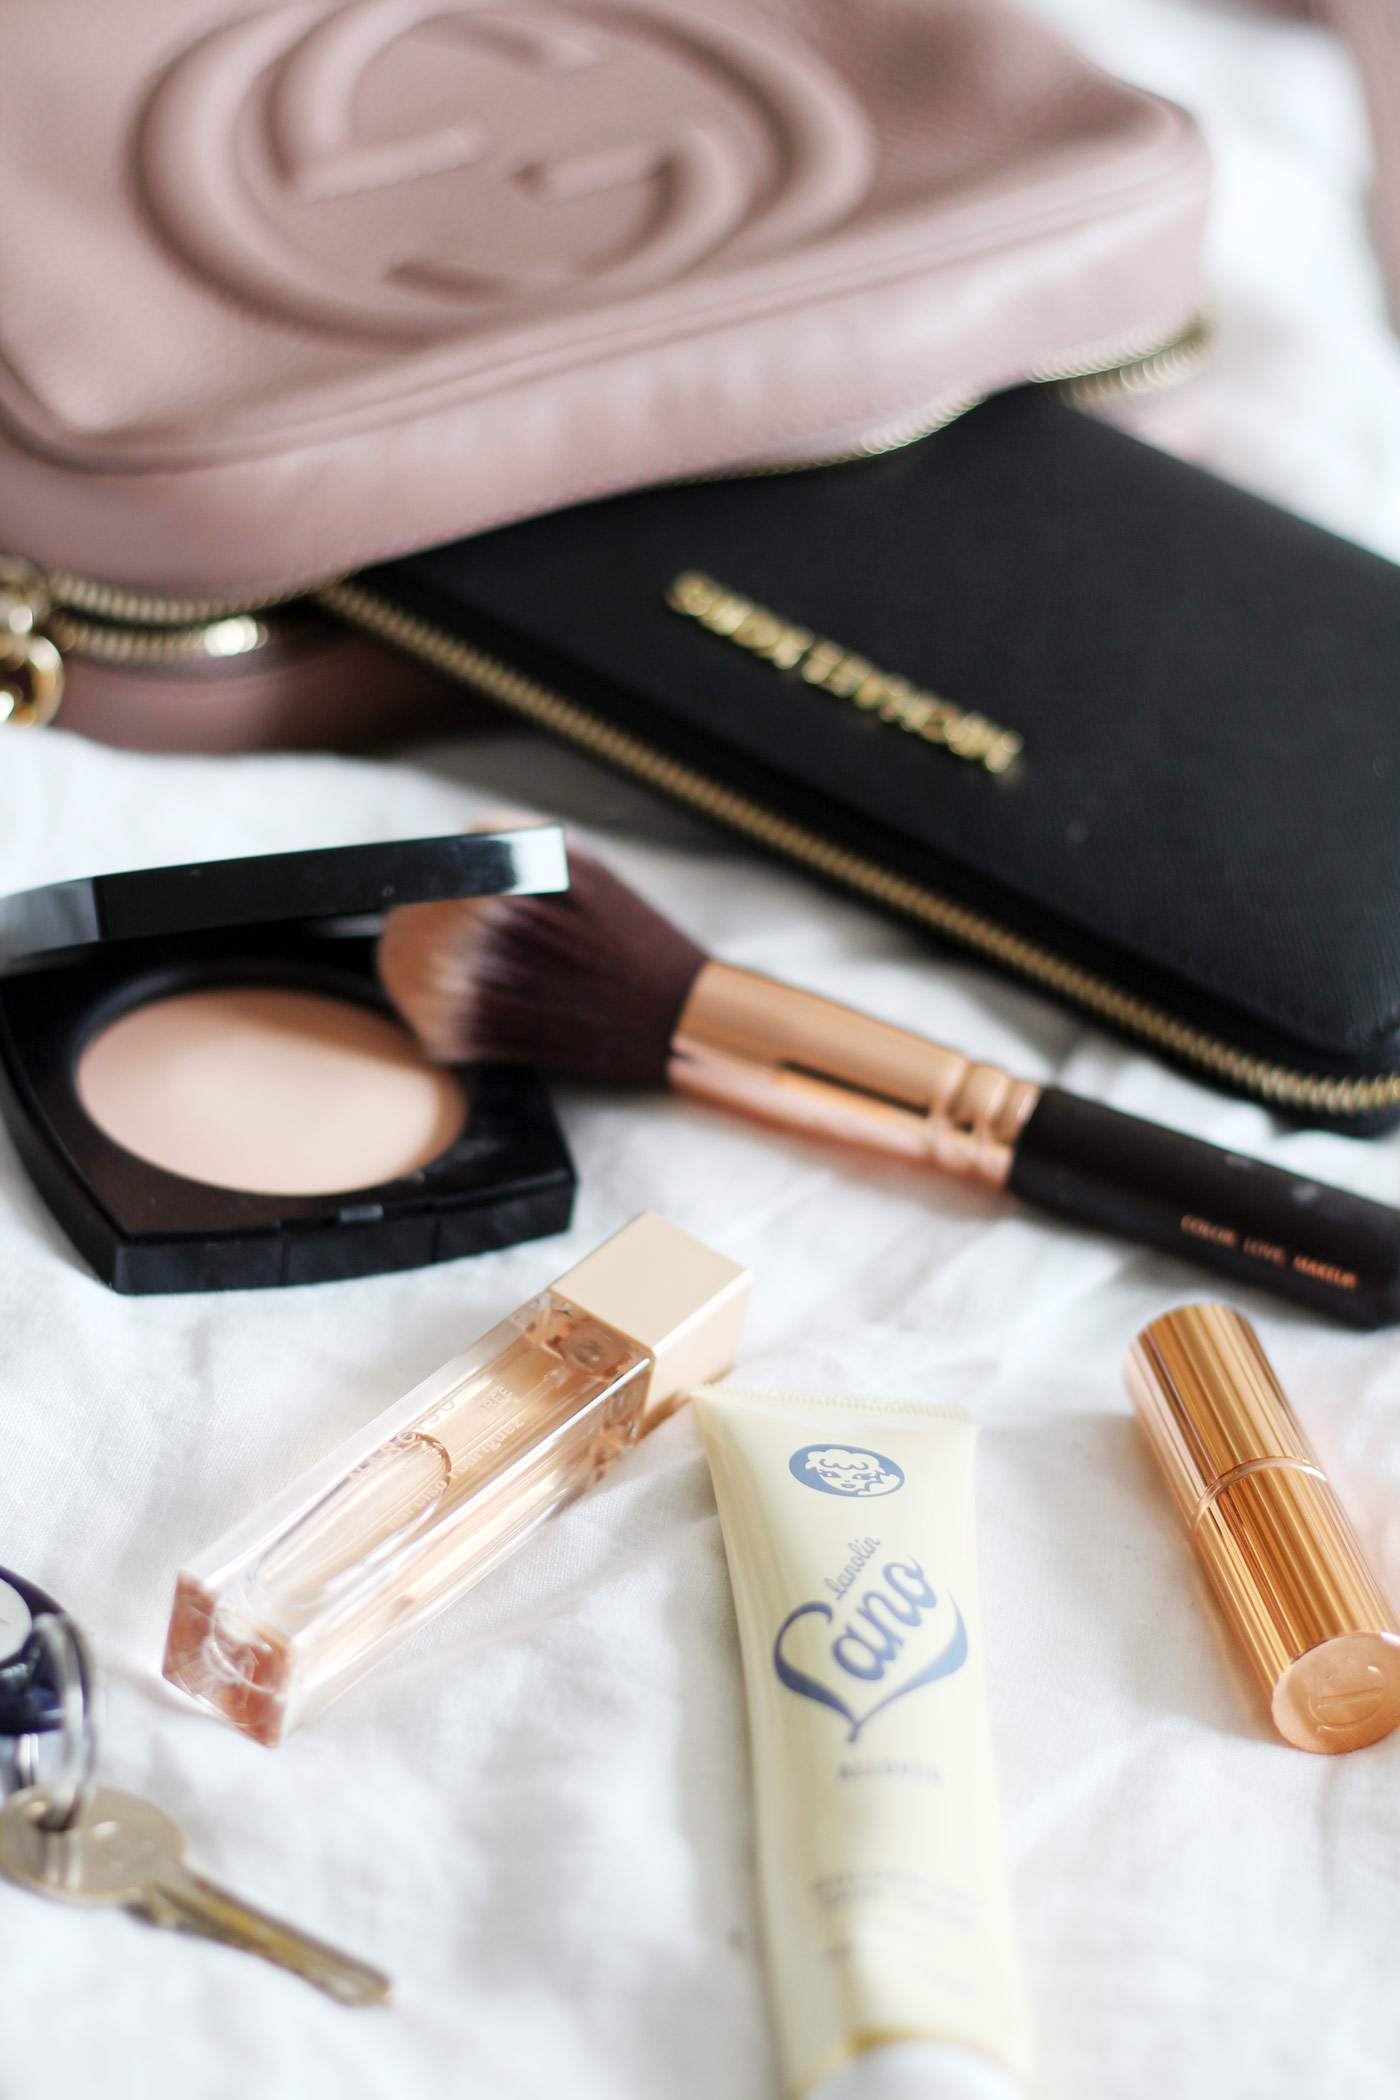 handbag-essentials-michael-kors-jetset-purse-chanel-les-beige-powder